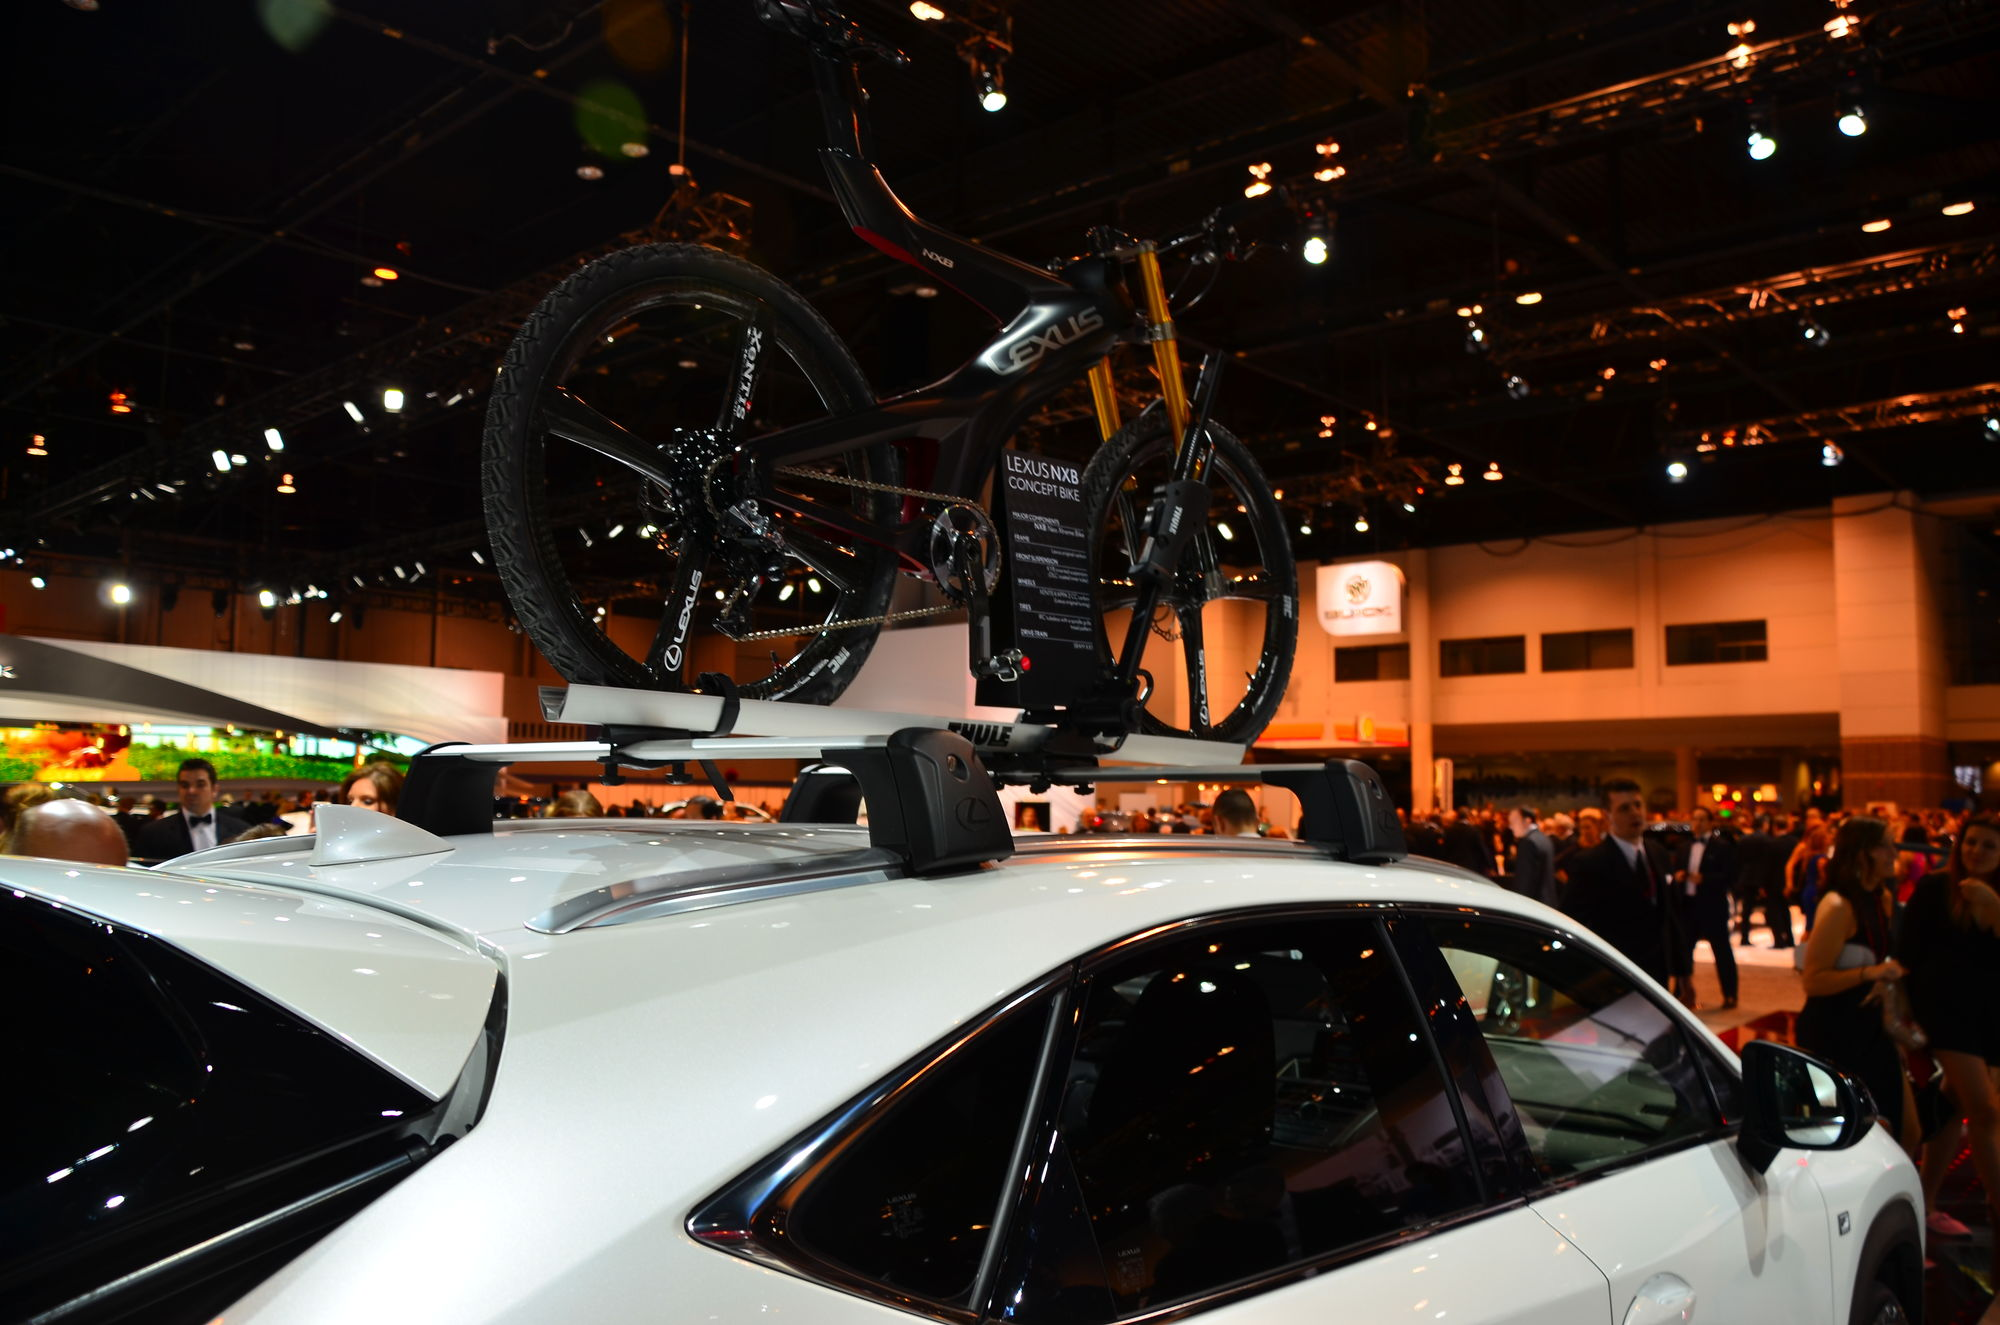 ficial NX Roof Rack Options Merged Threads Page 2